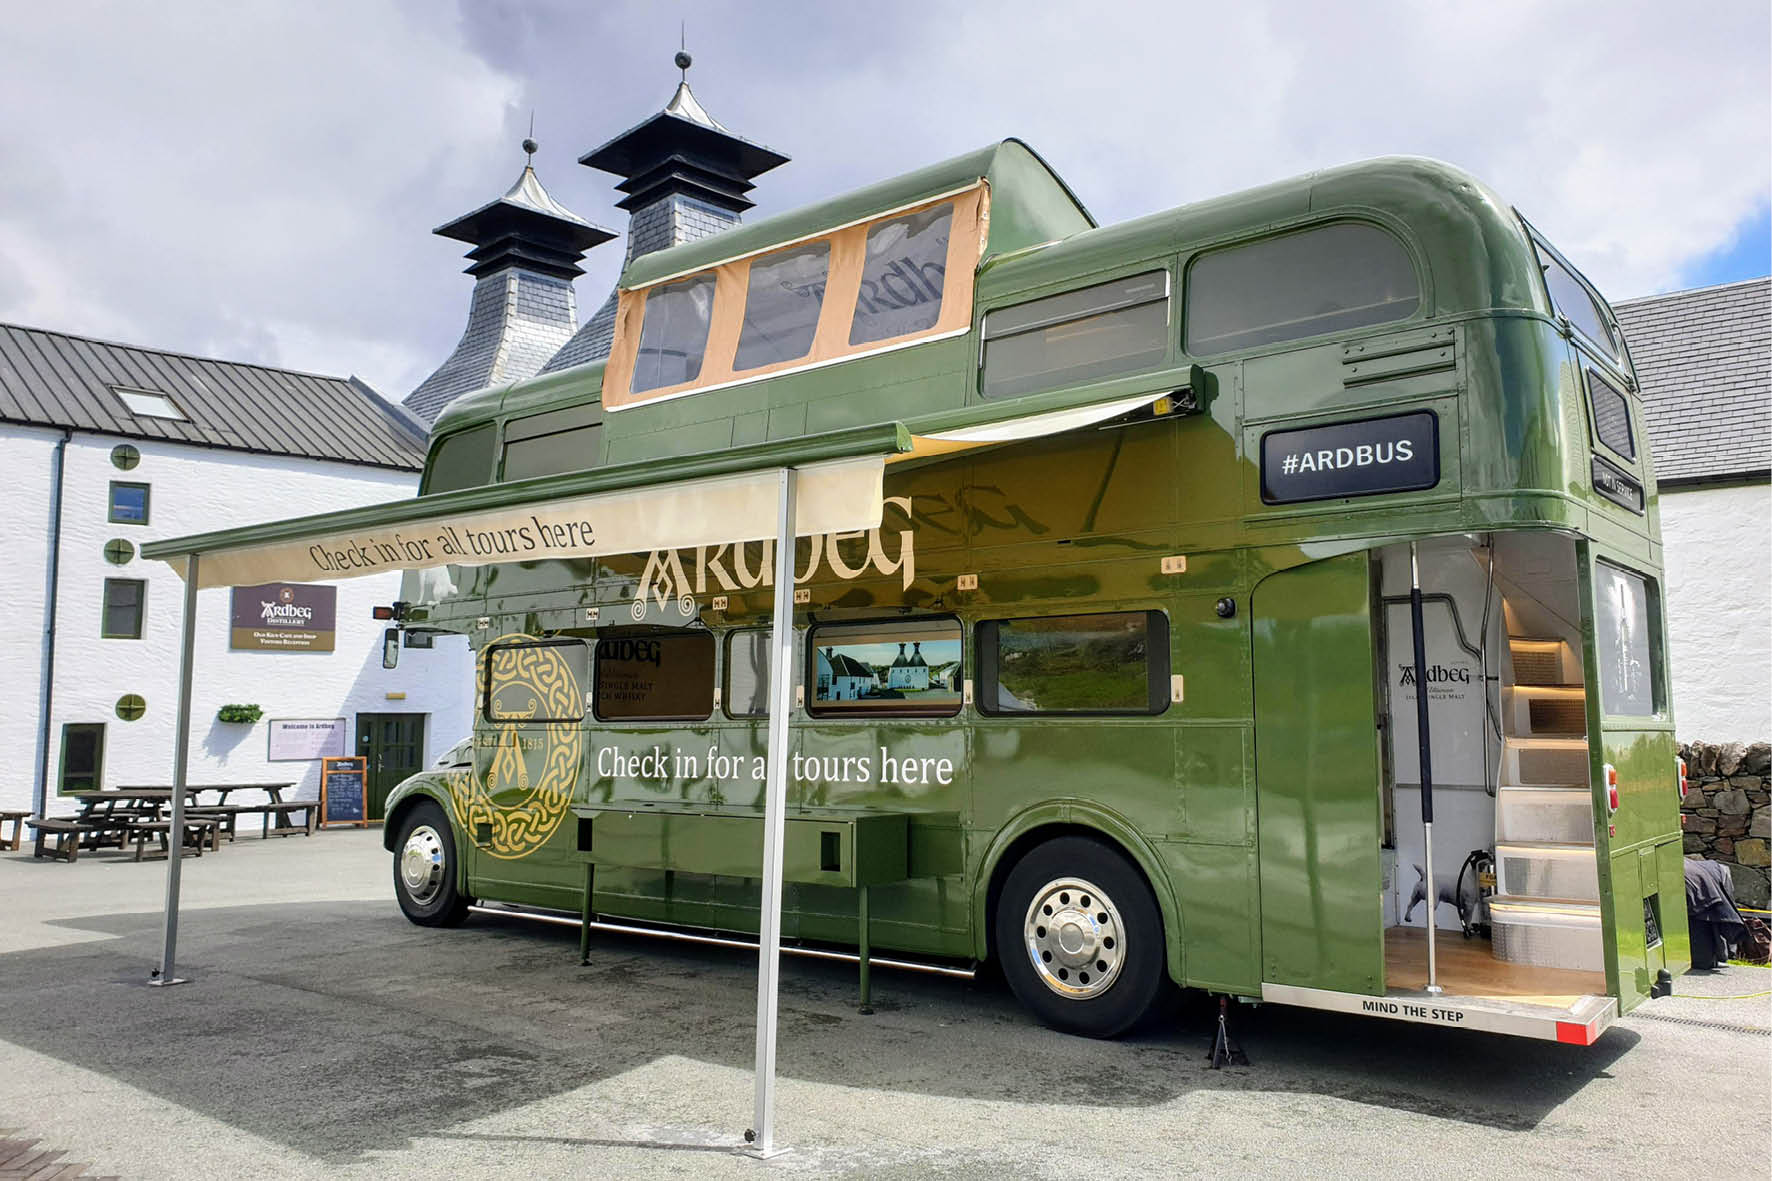 bus_business_2019_ardbeg_3.jpg